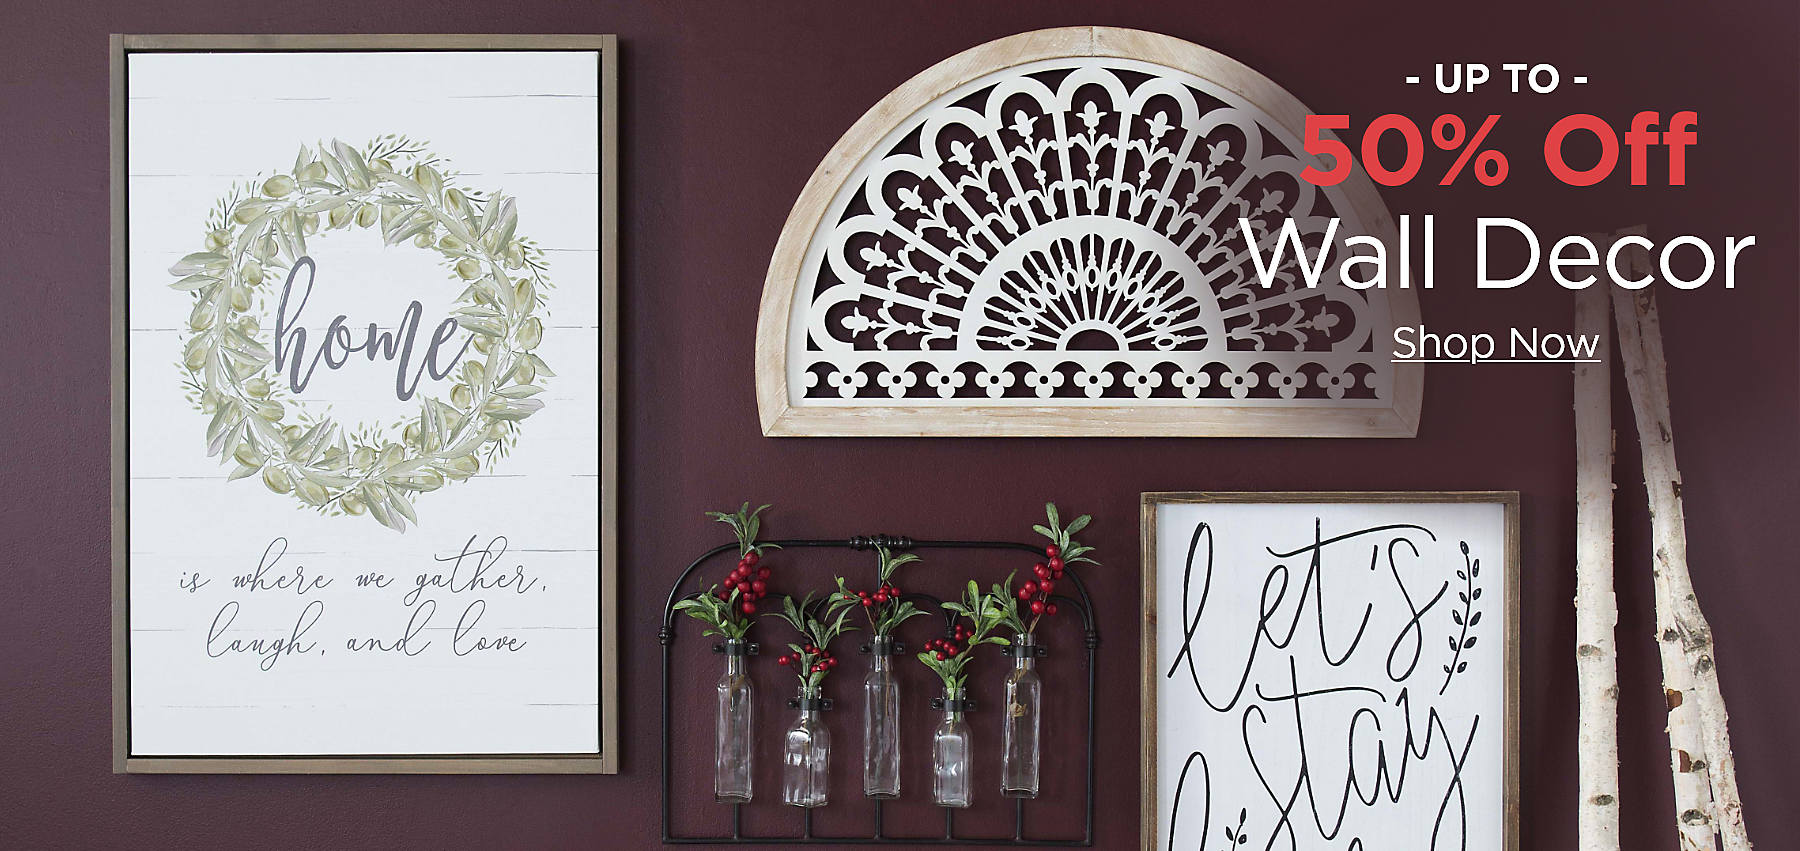 Wall Decor Up to 50% OFF